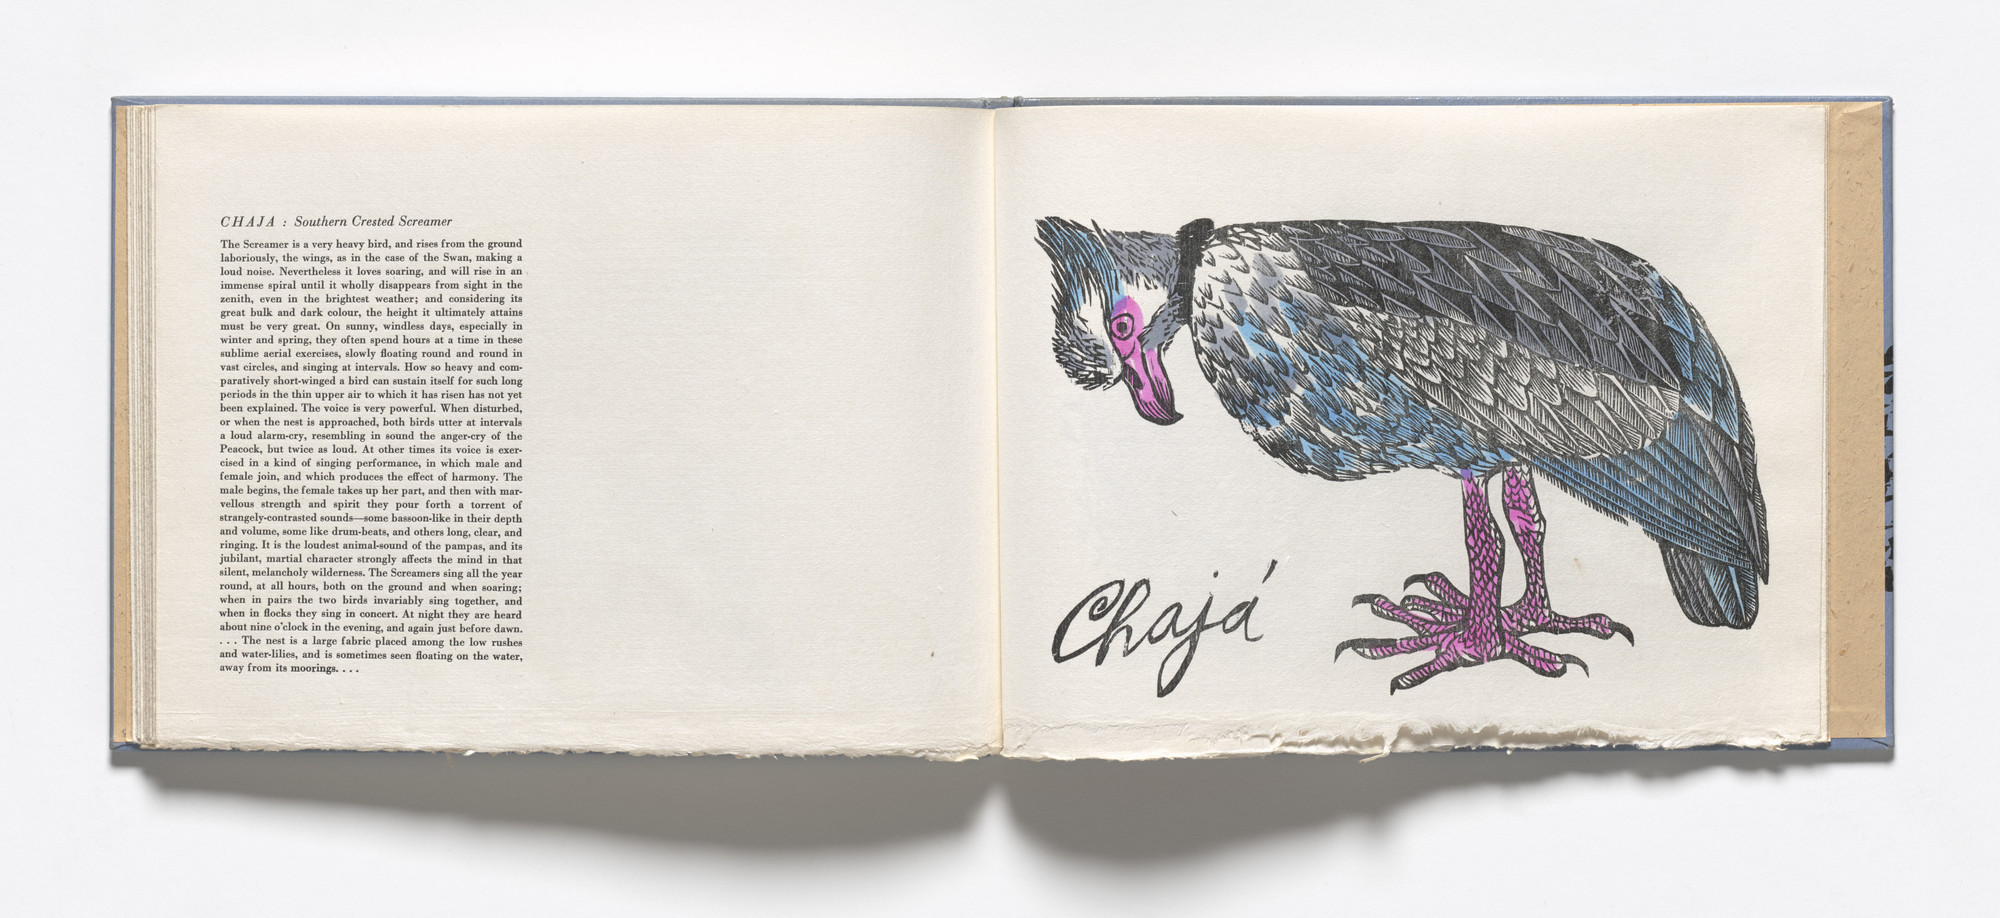 Antonio Frasconi. Chaja, Southern Crested Screamer (plate, folio 25) from Birds from my Homeland. 1958